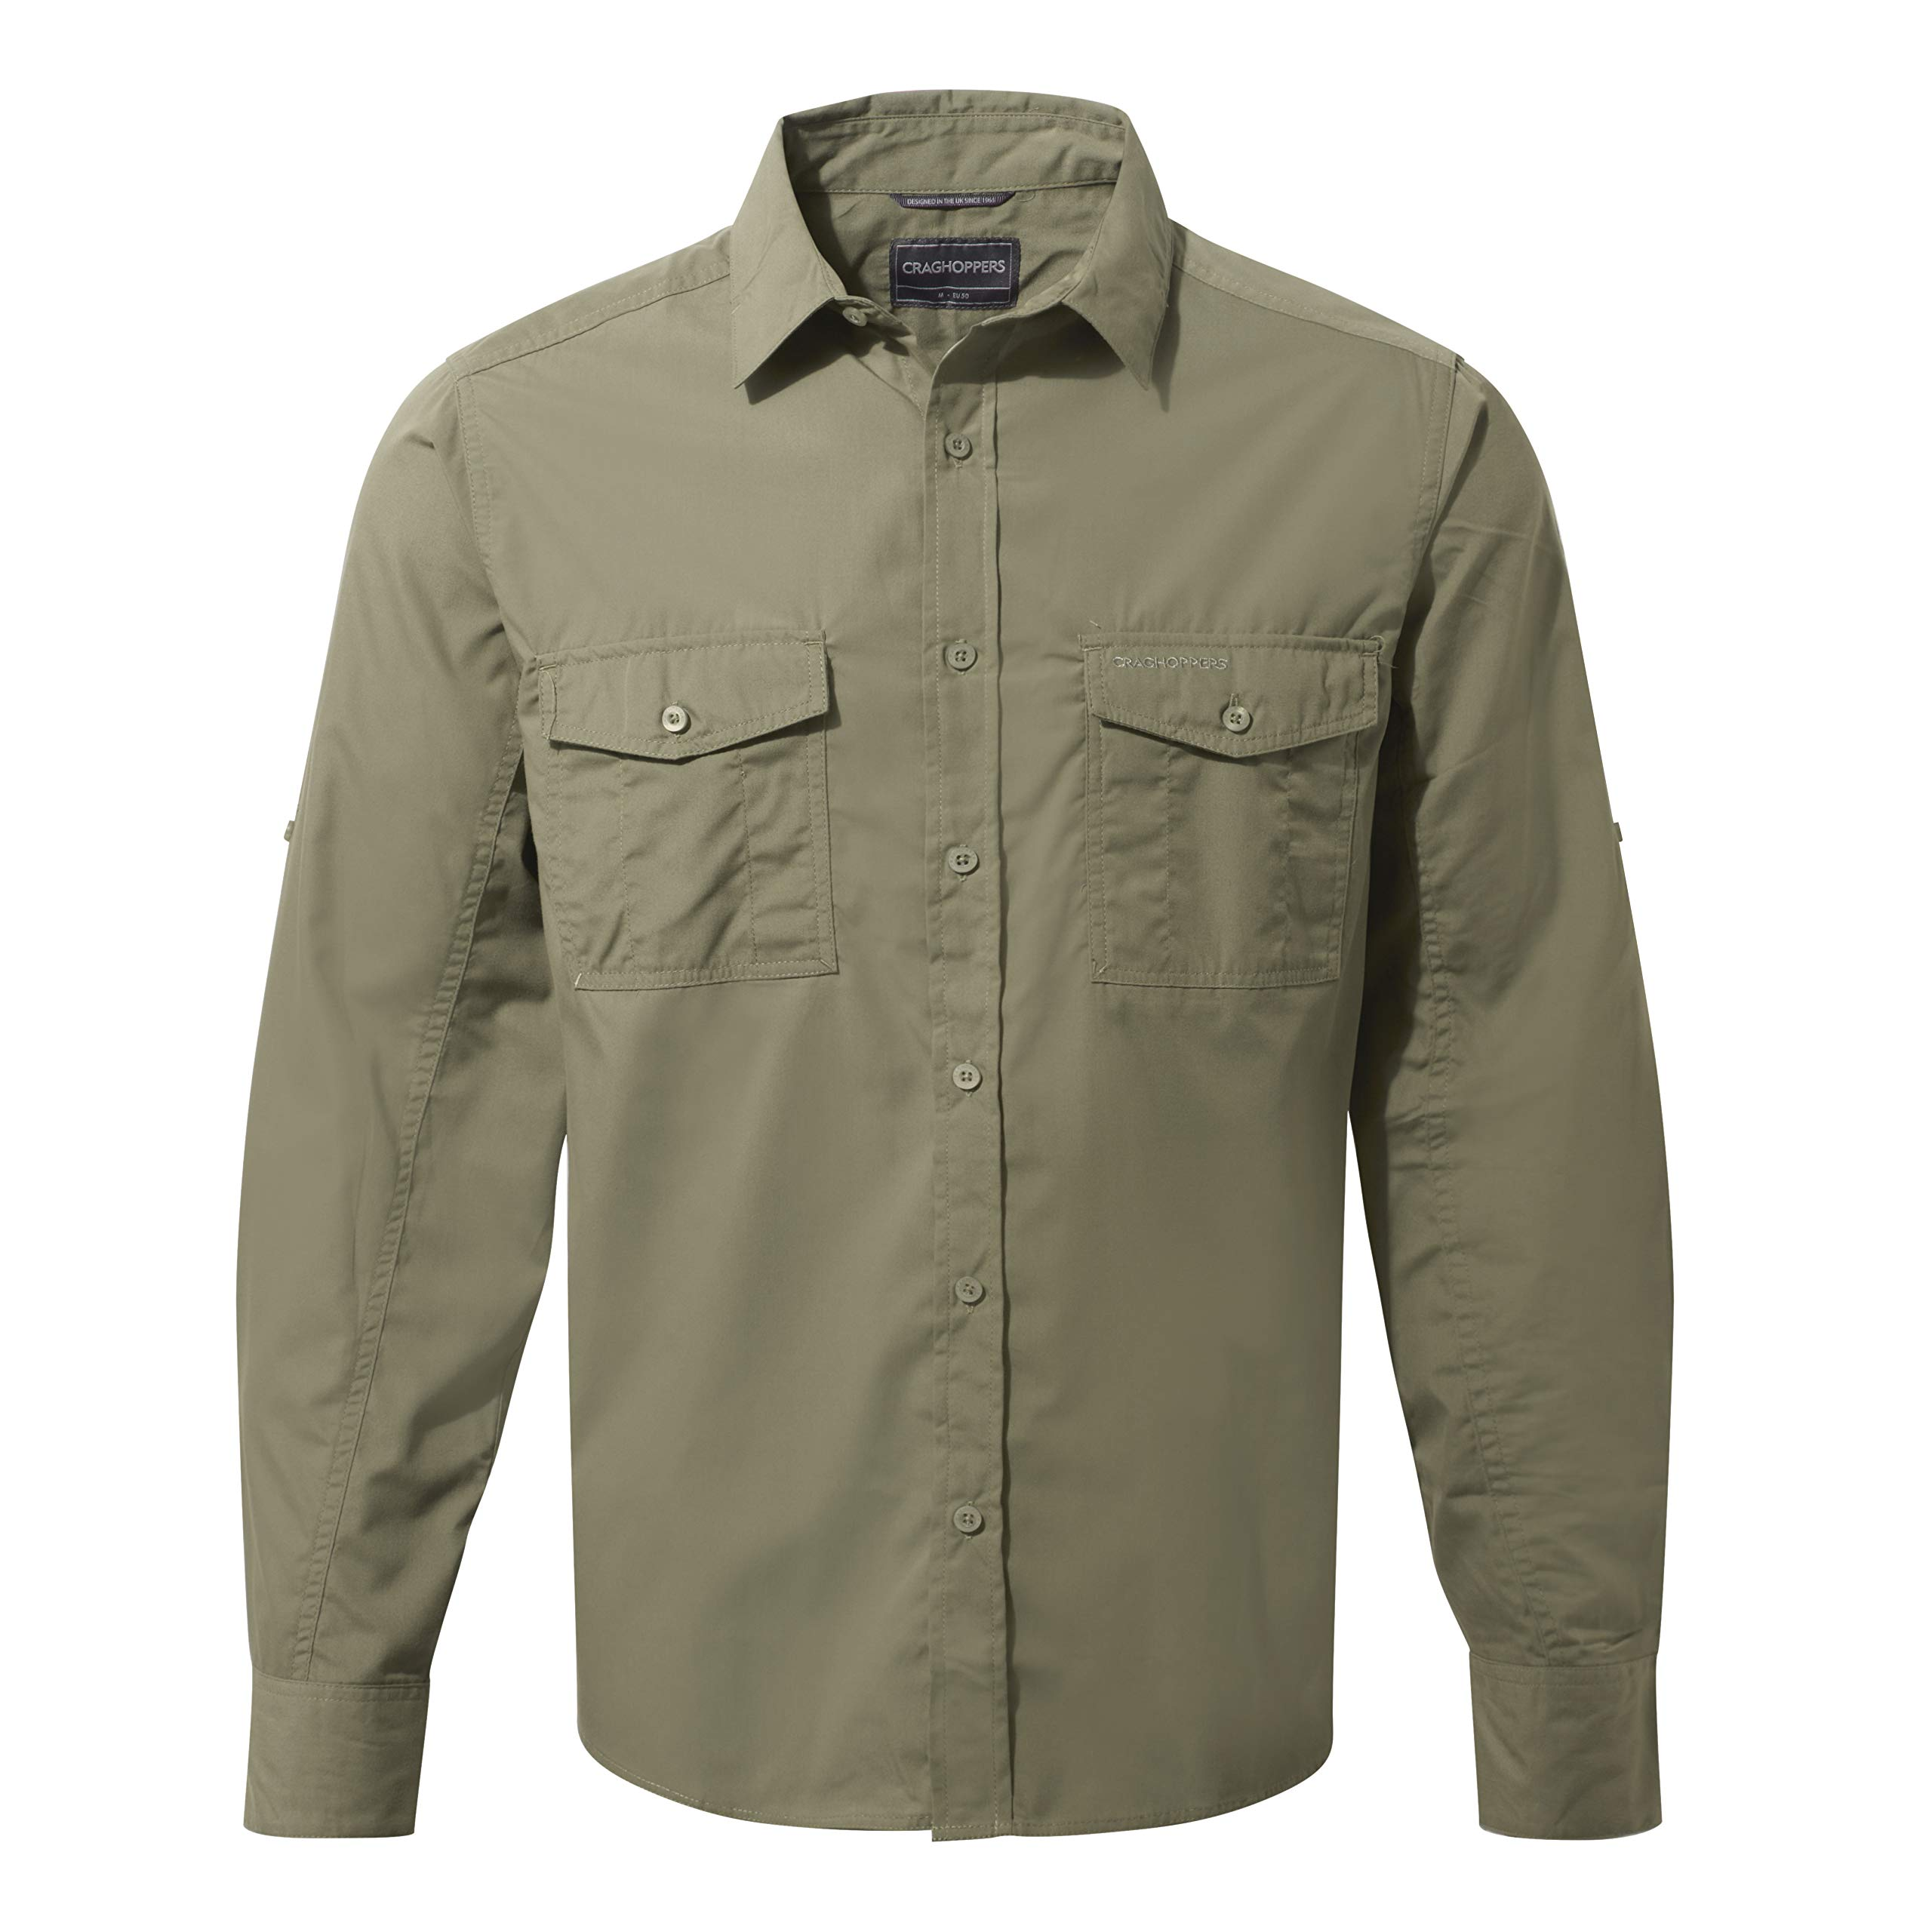 Craghoppers Men's Kiwi Classic Long Sleeve Button Down Shirt Insect Repellent UPF 40+ Mid Layer Top